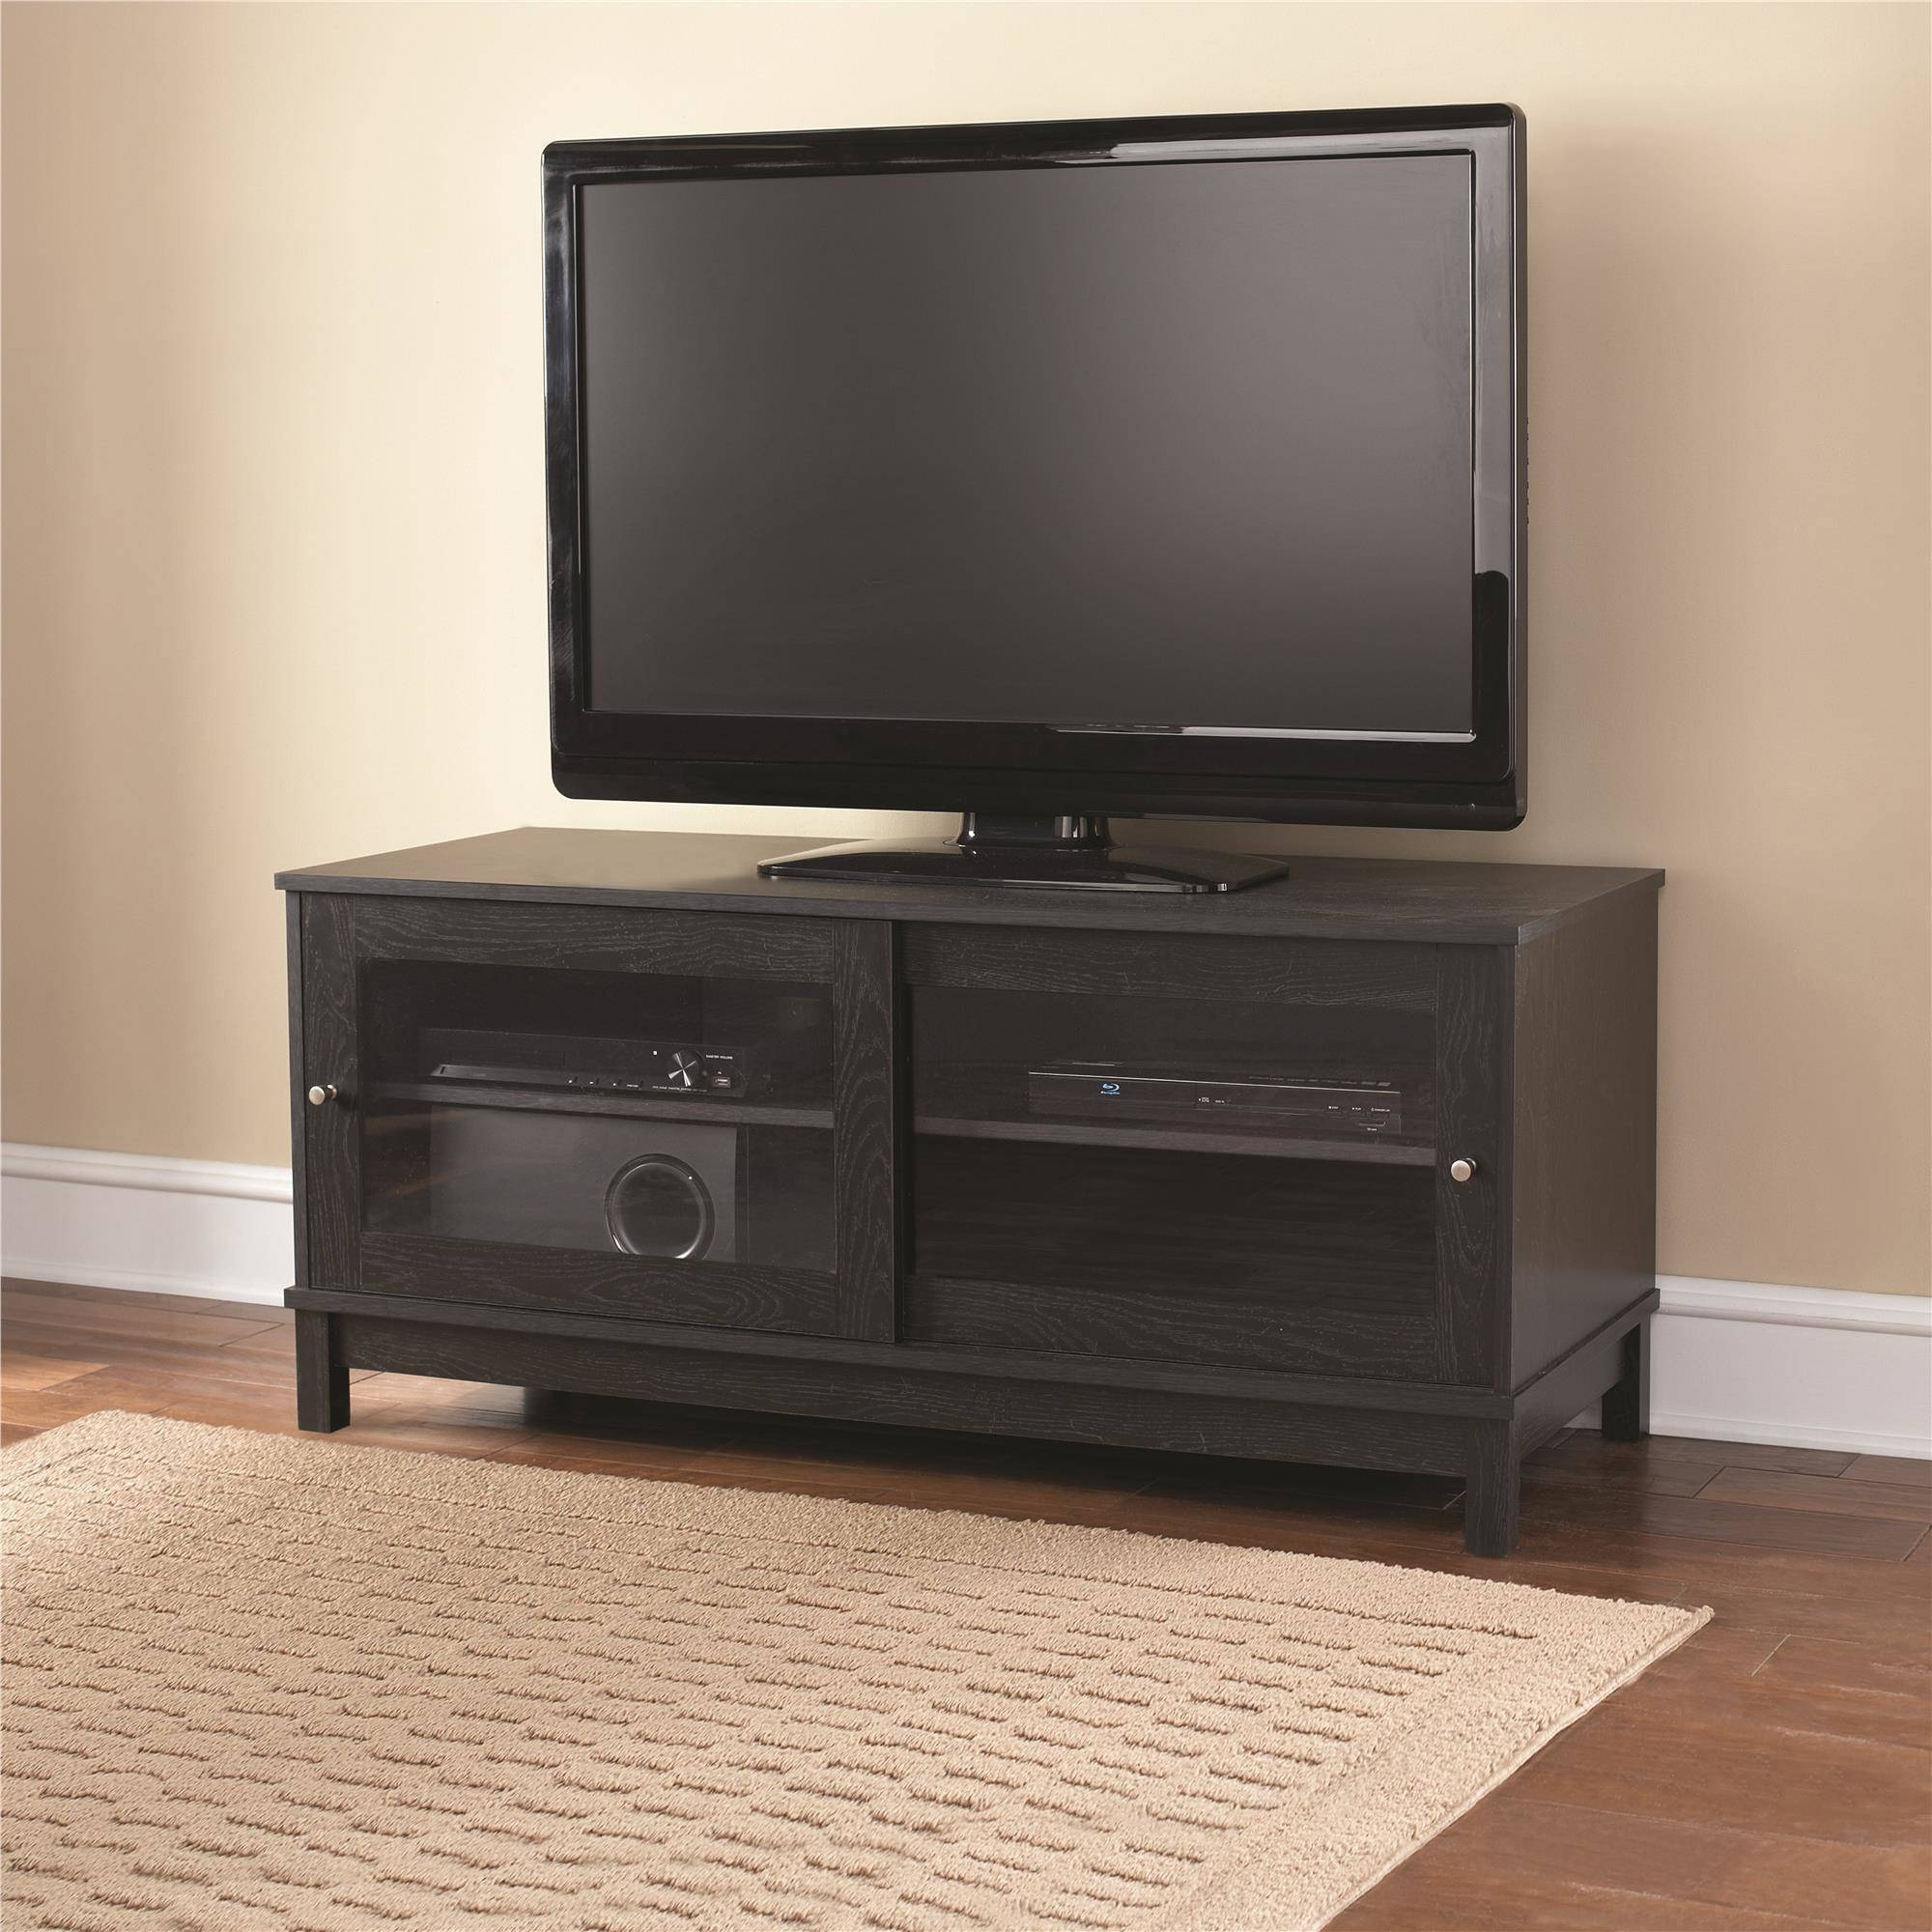 """Mainstays 55"""" Tv Stand With Sliding Glass Doors, Black Ebony Ash Intended For Wooden Tv Stands For 55 Inch Flat Screen (View 5 of 15)"""